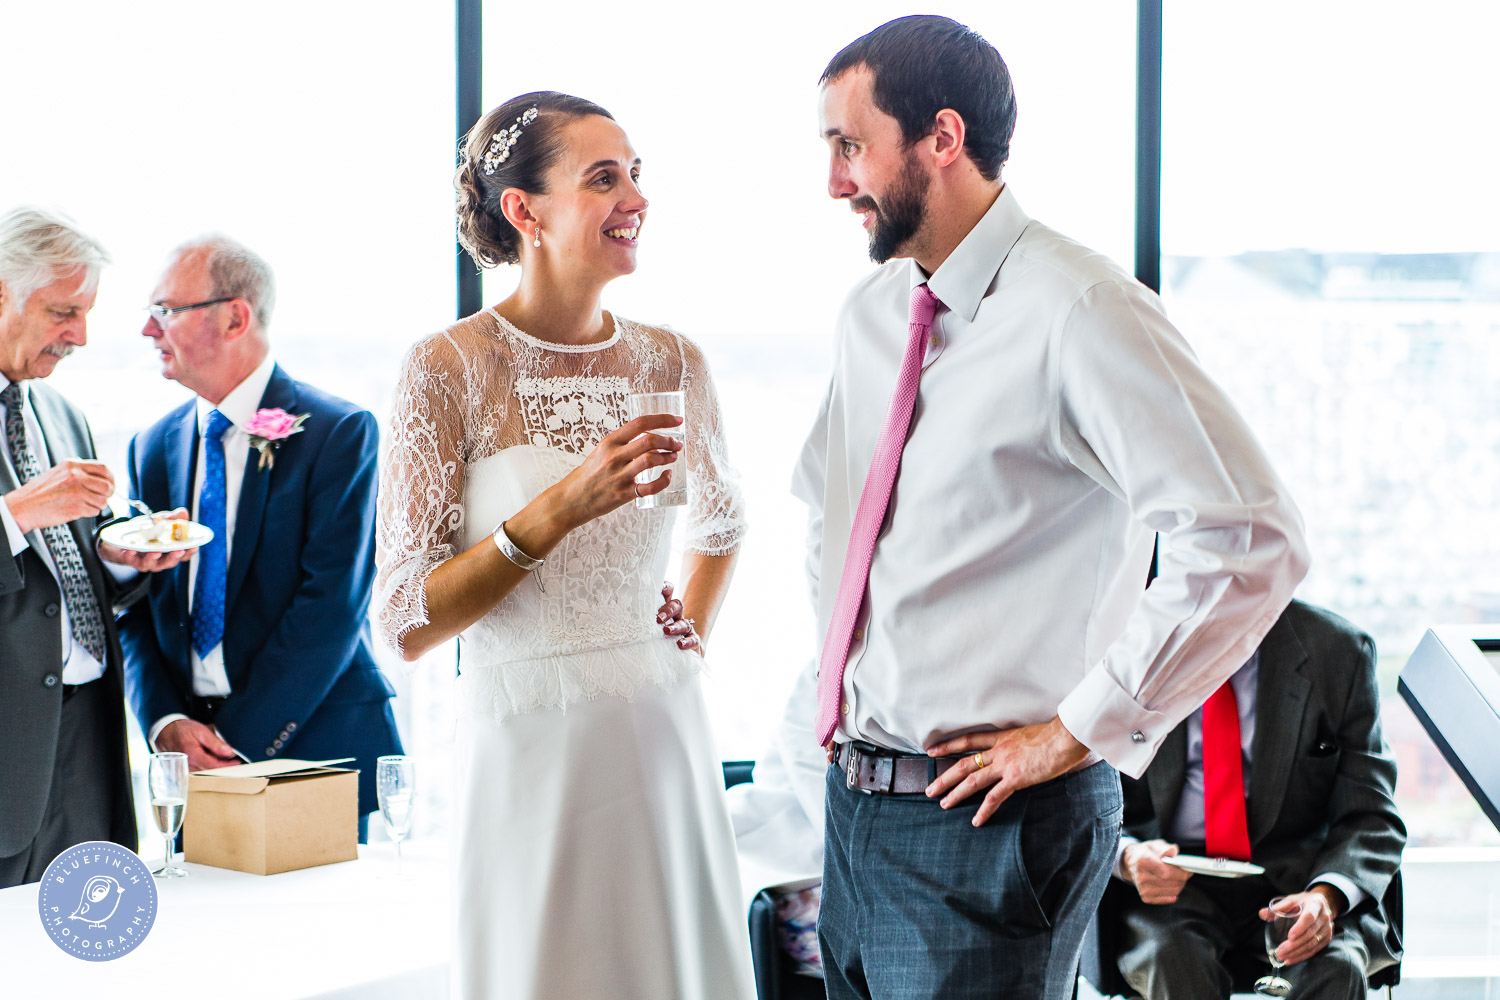 Andrew & Laura's Wedding Photography at the Library of Birmingham